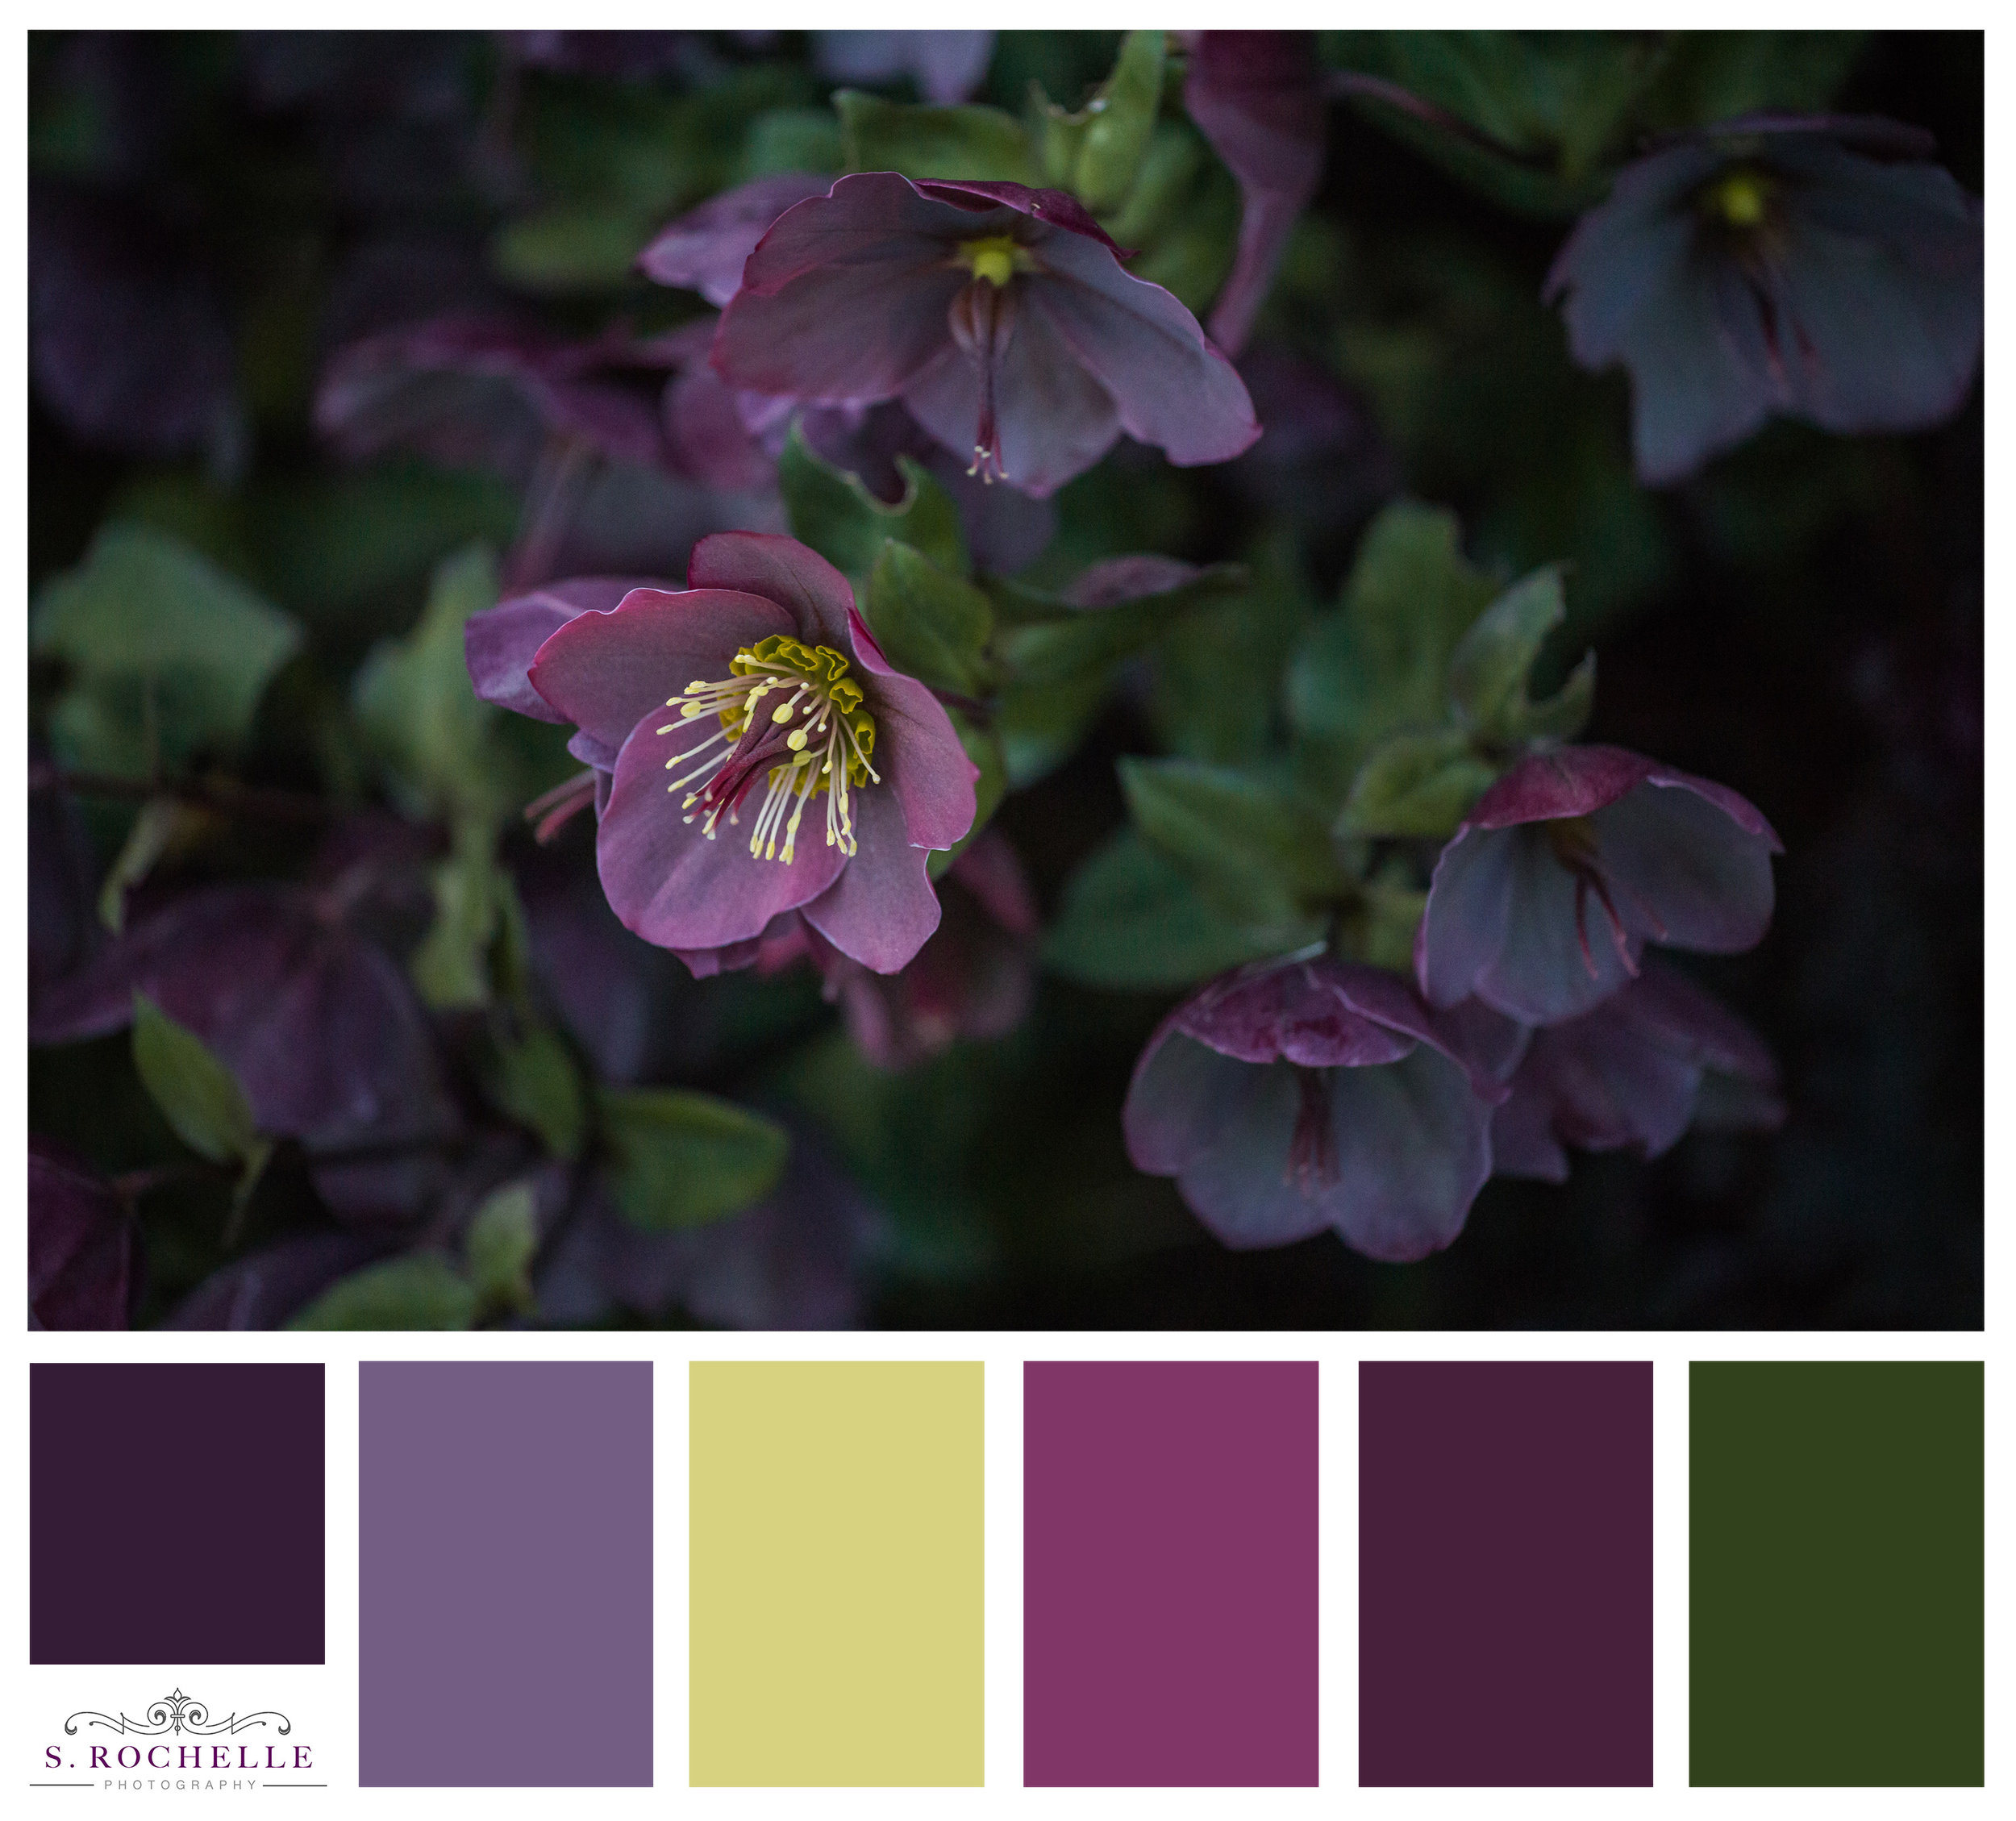 Hellebore_S_Rochelle_Photography_20170503_IMG_9544_ColorPalatte.jpg